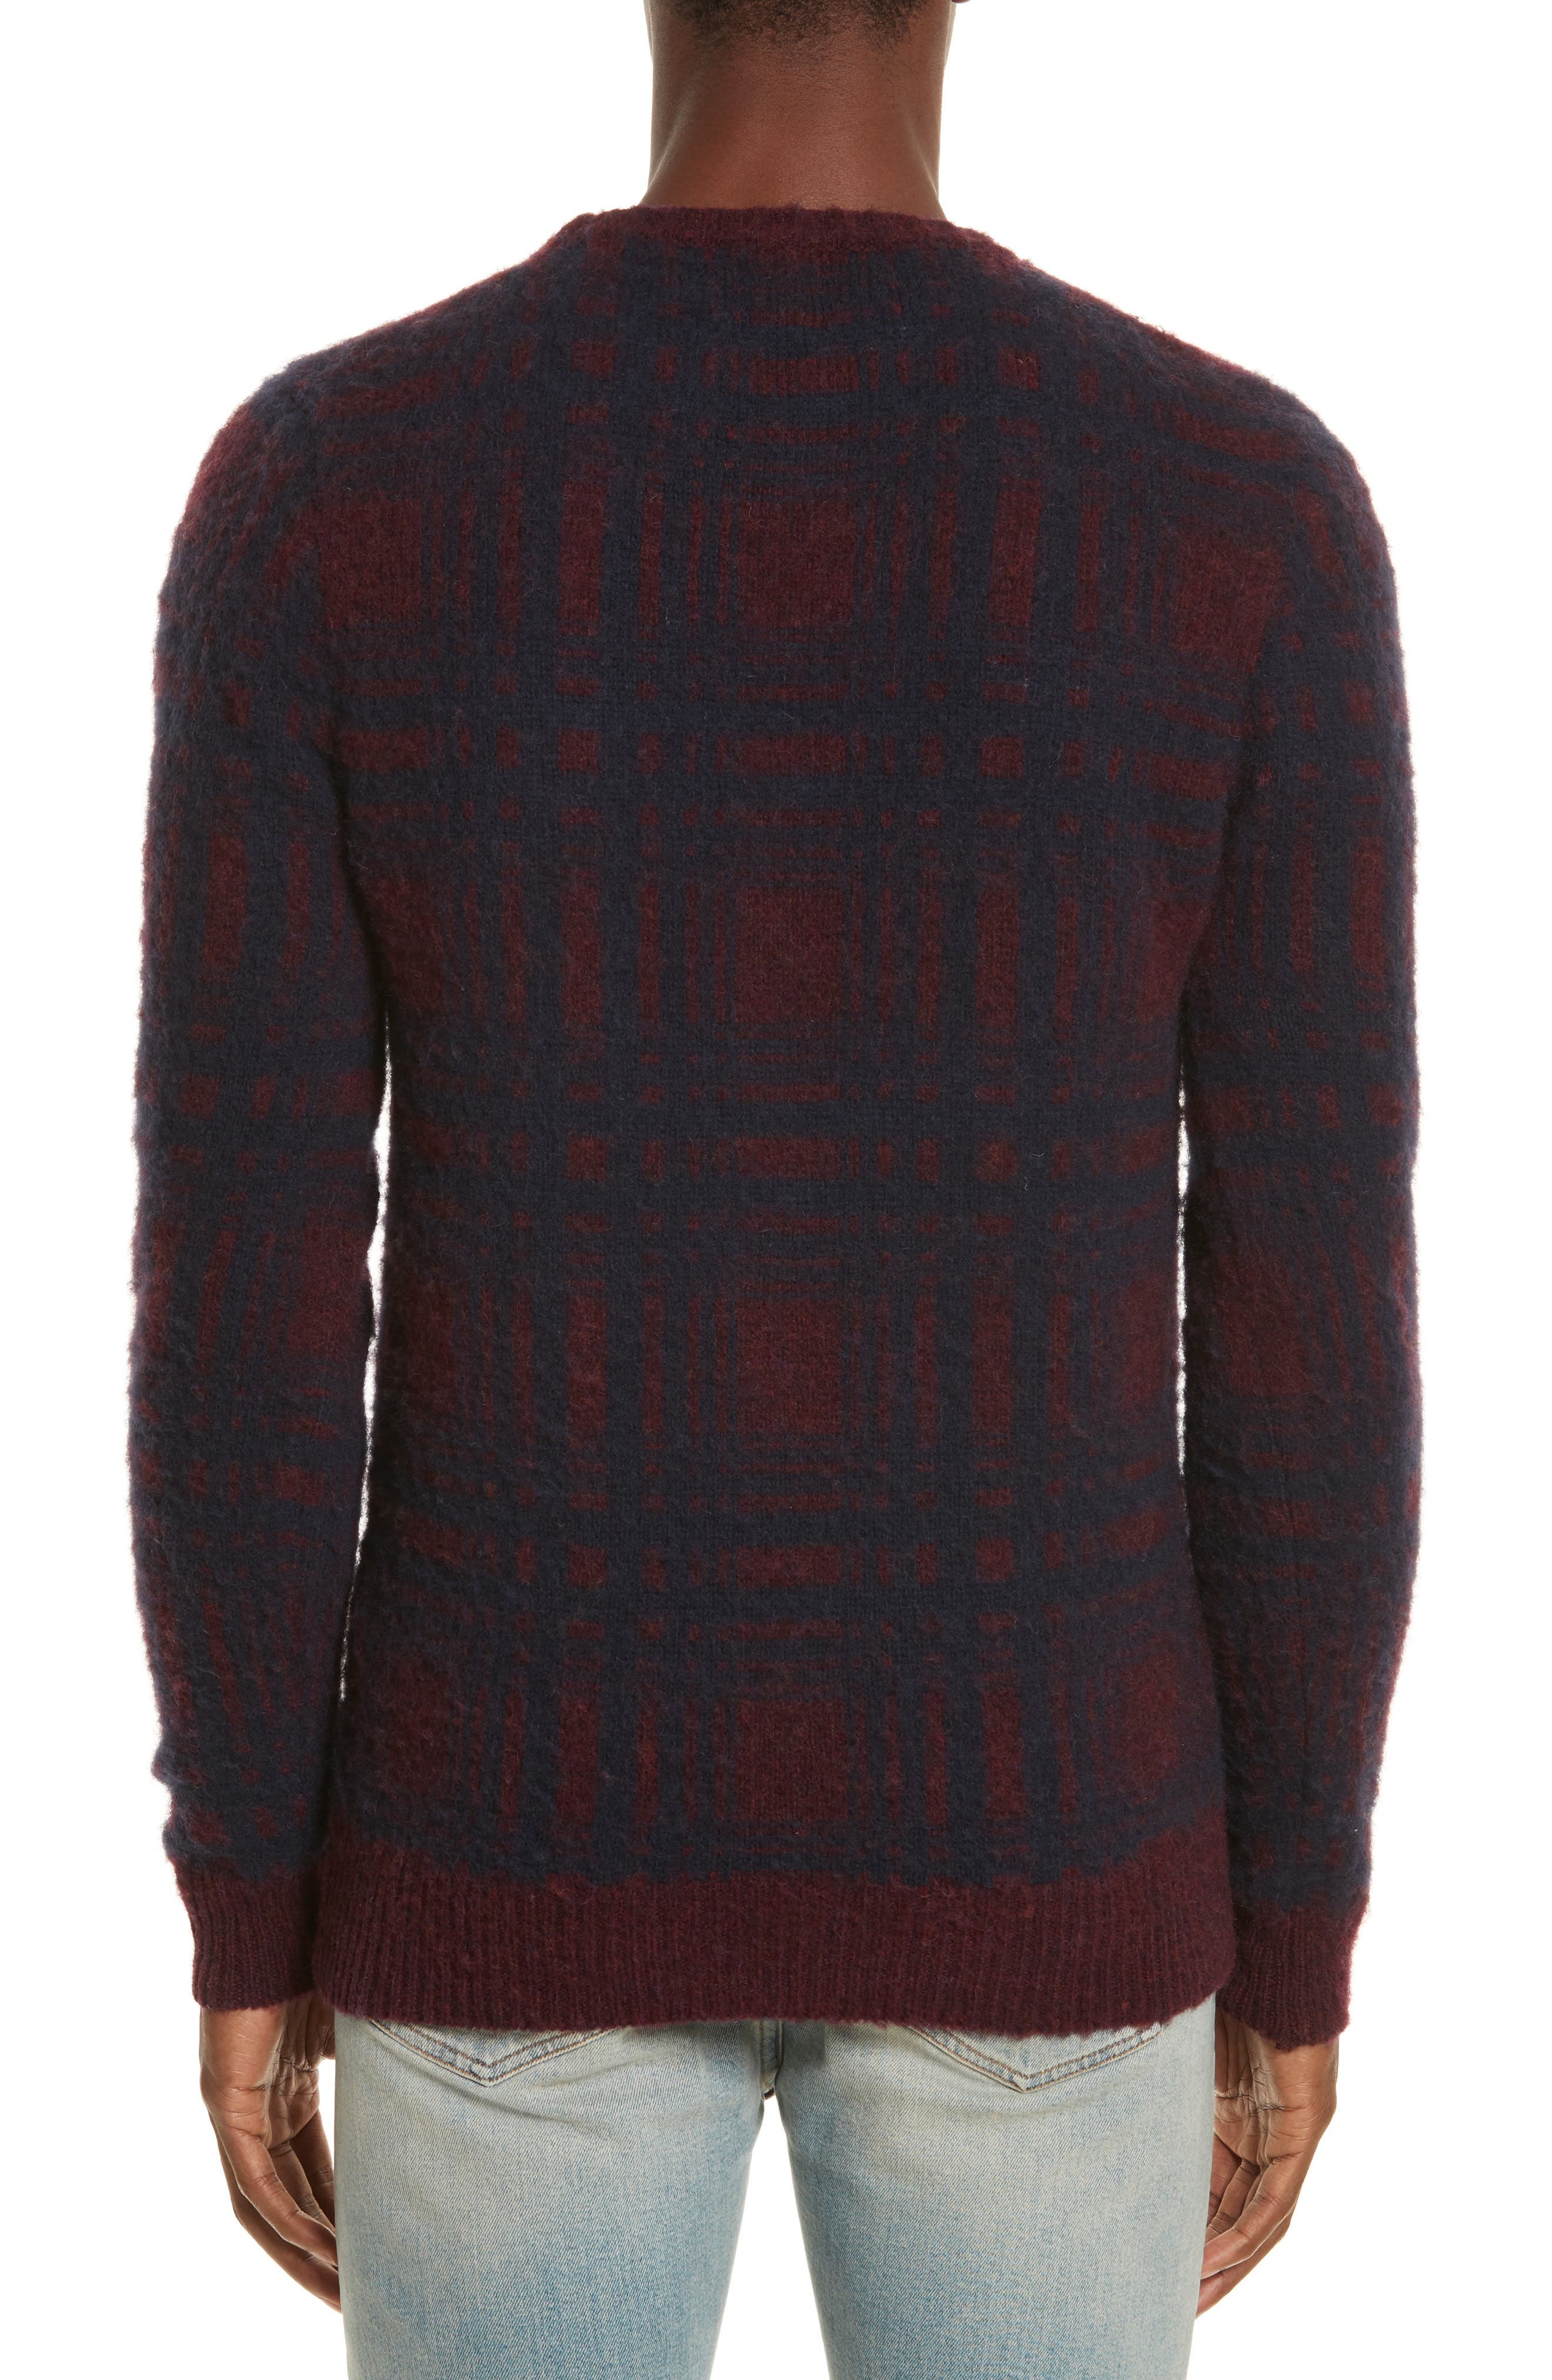 Sam Intarsia Check Wool Sweater,                             Alternate thumbnail 2, color,                             606